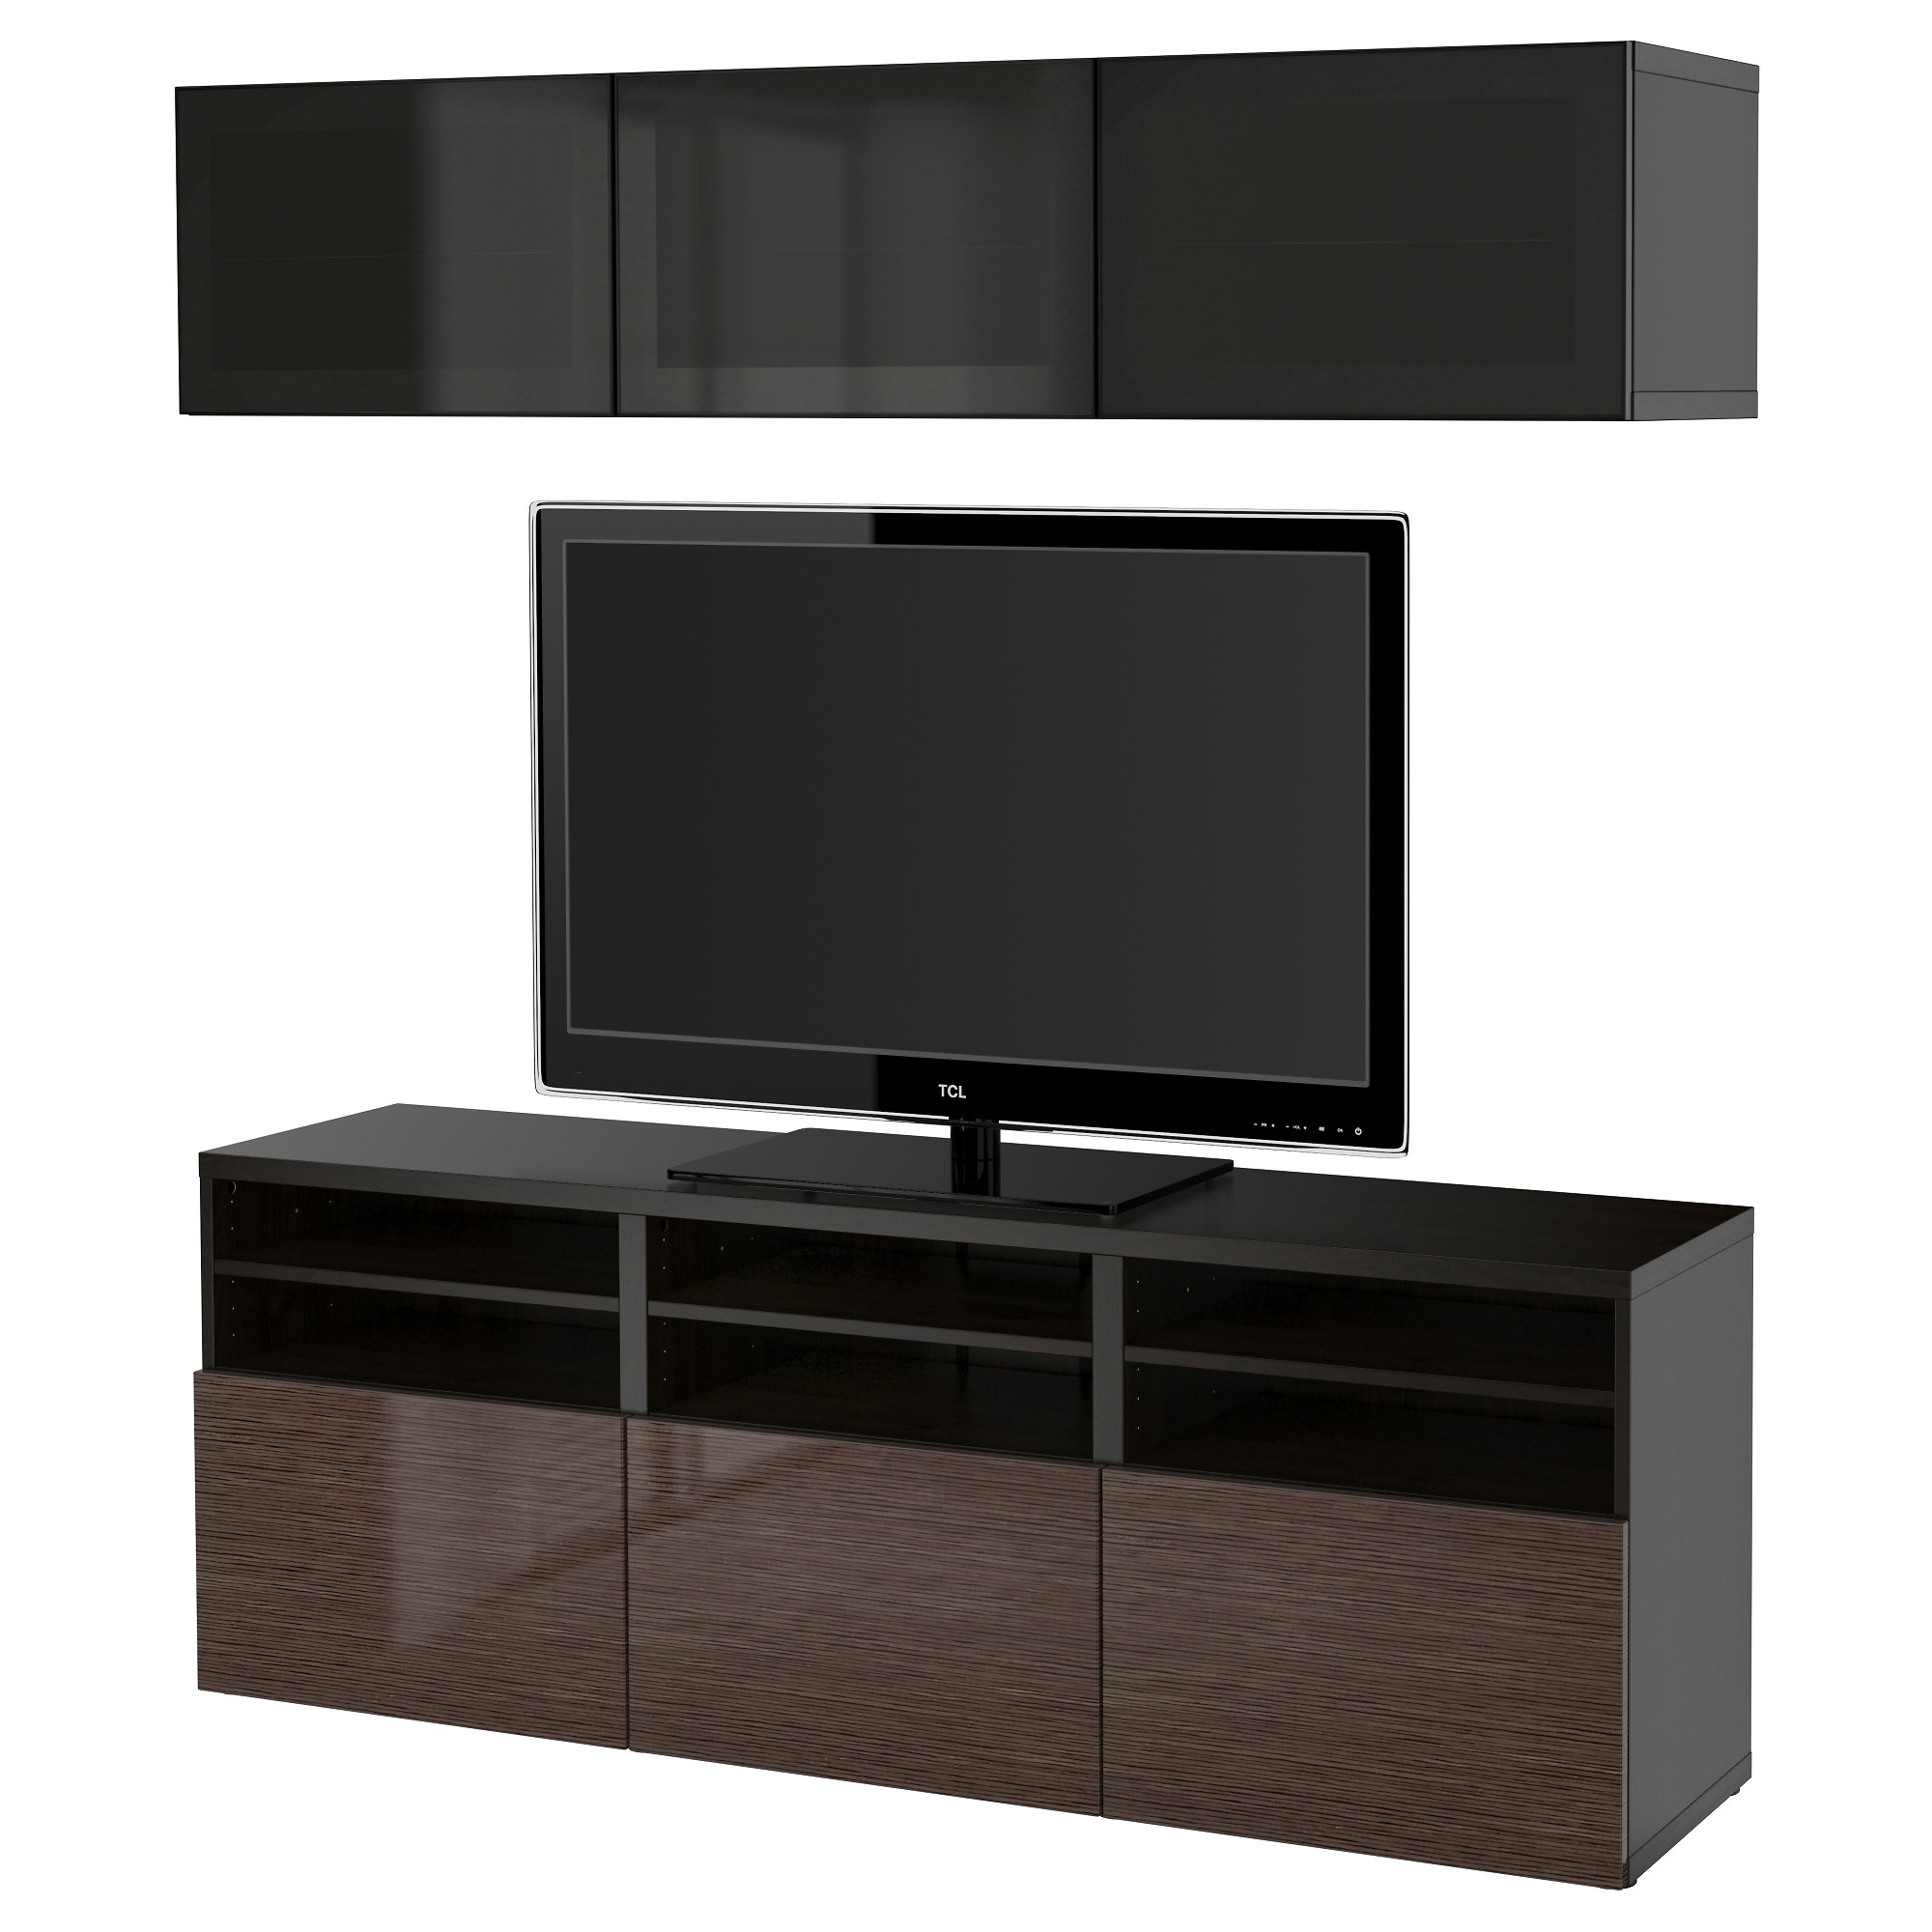 Image gallery ikea media cabinet for Tv media storage cabinet